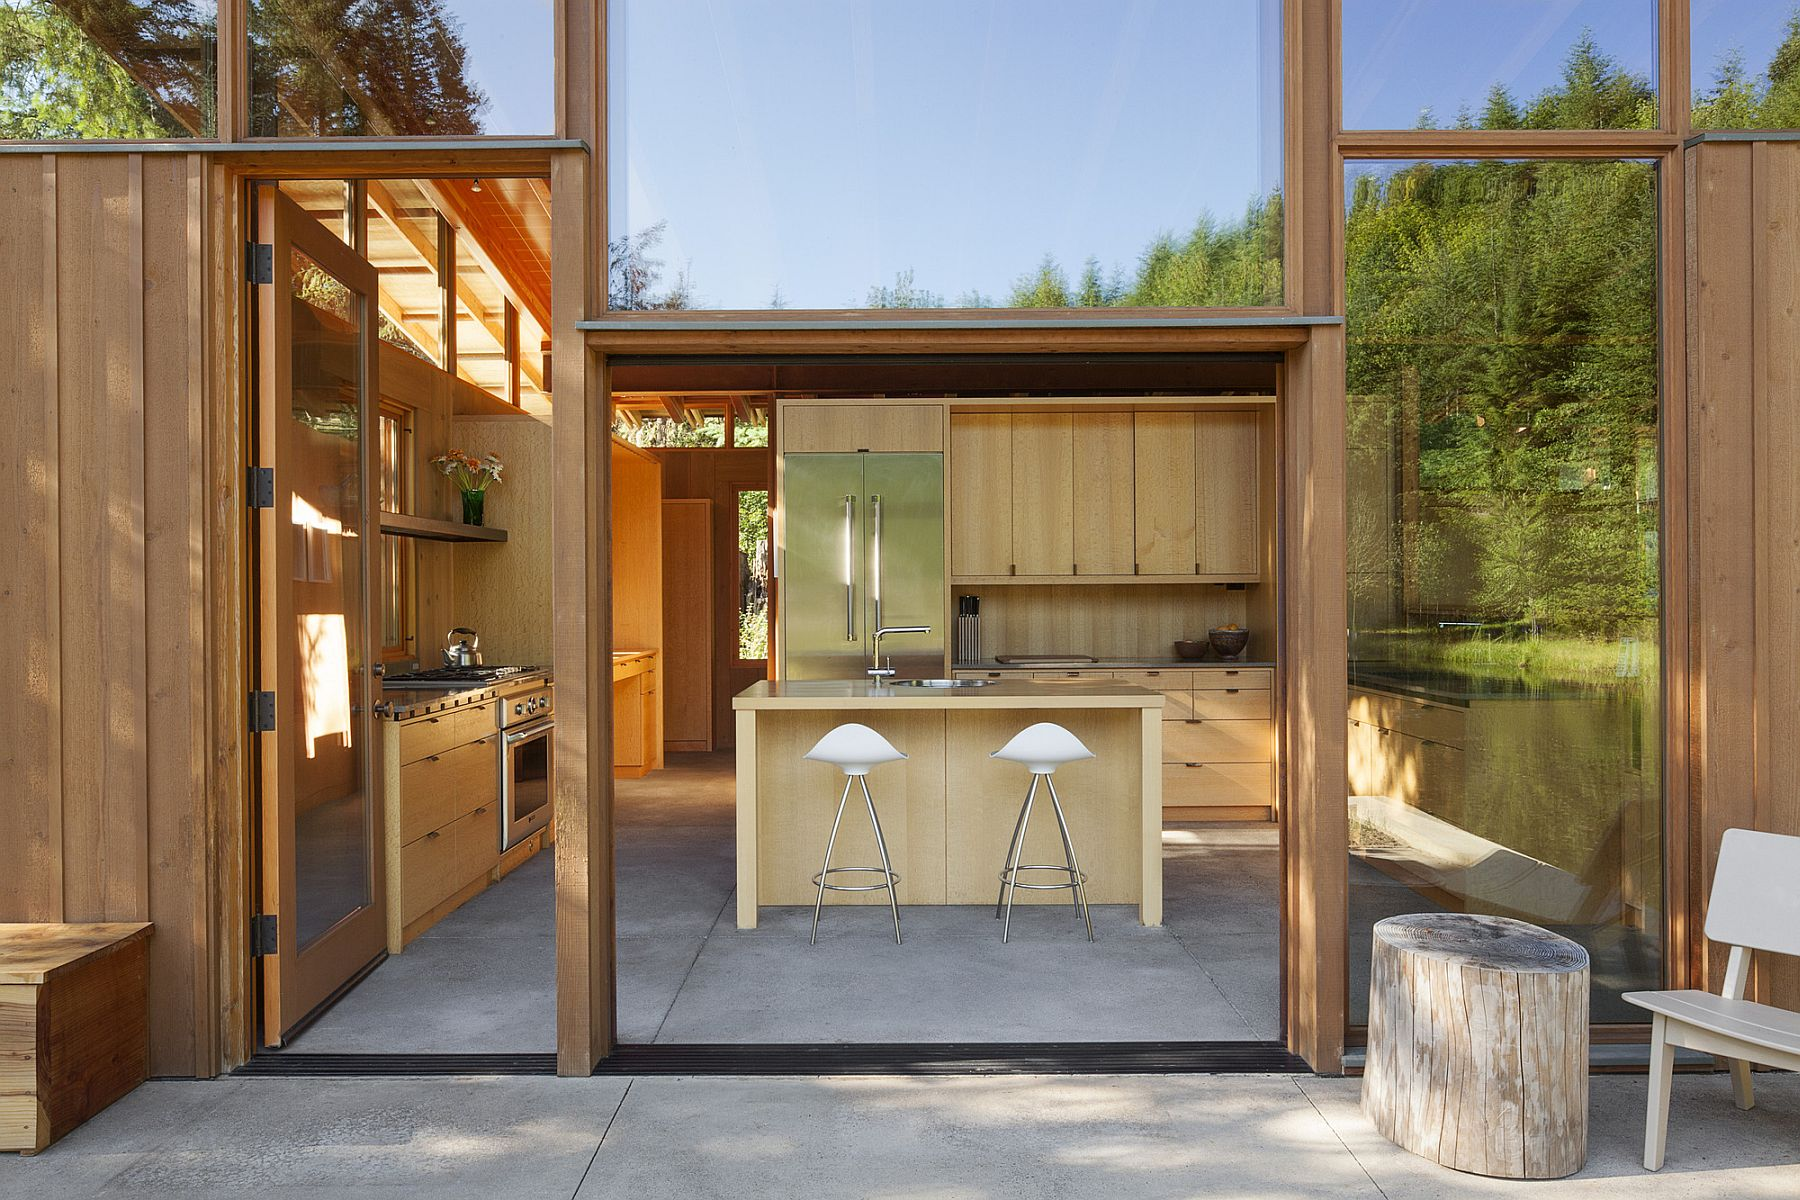 Glass walls of the home reflect the natural canopy around it